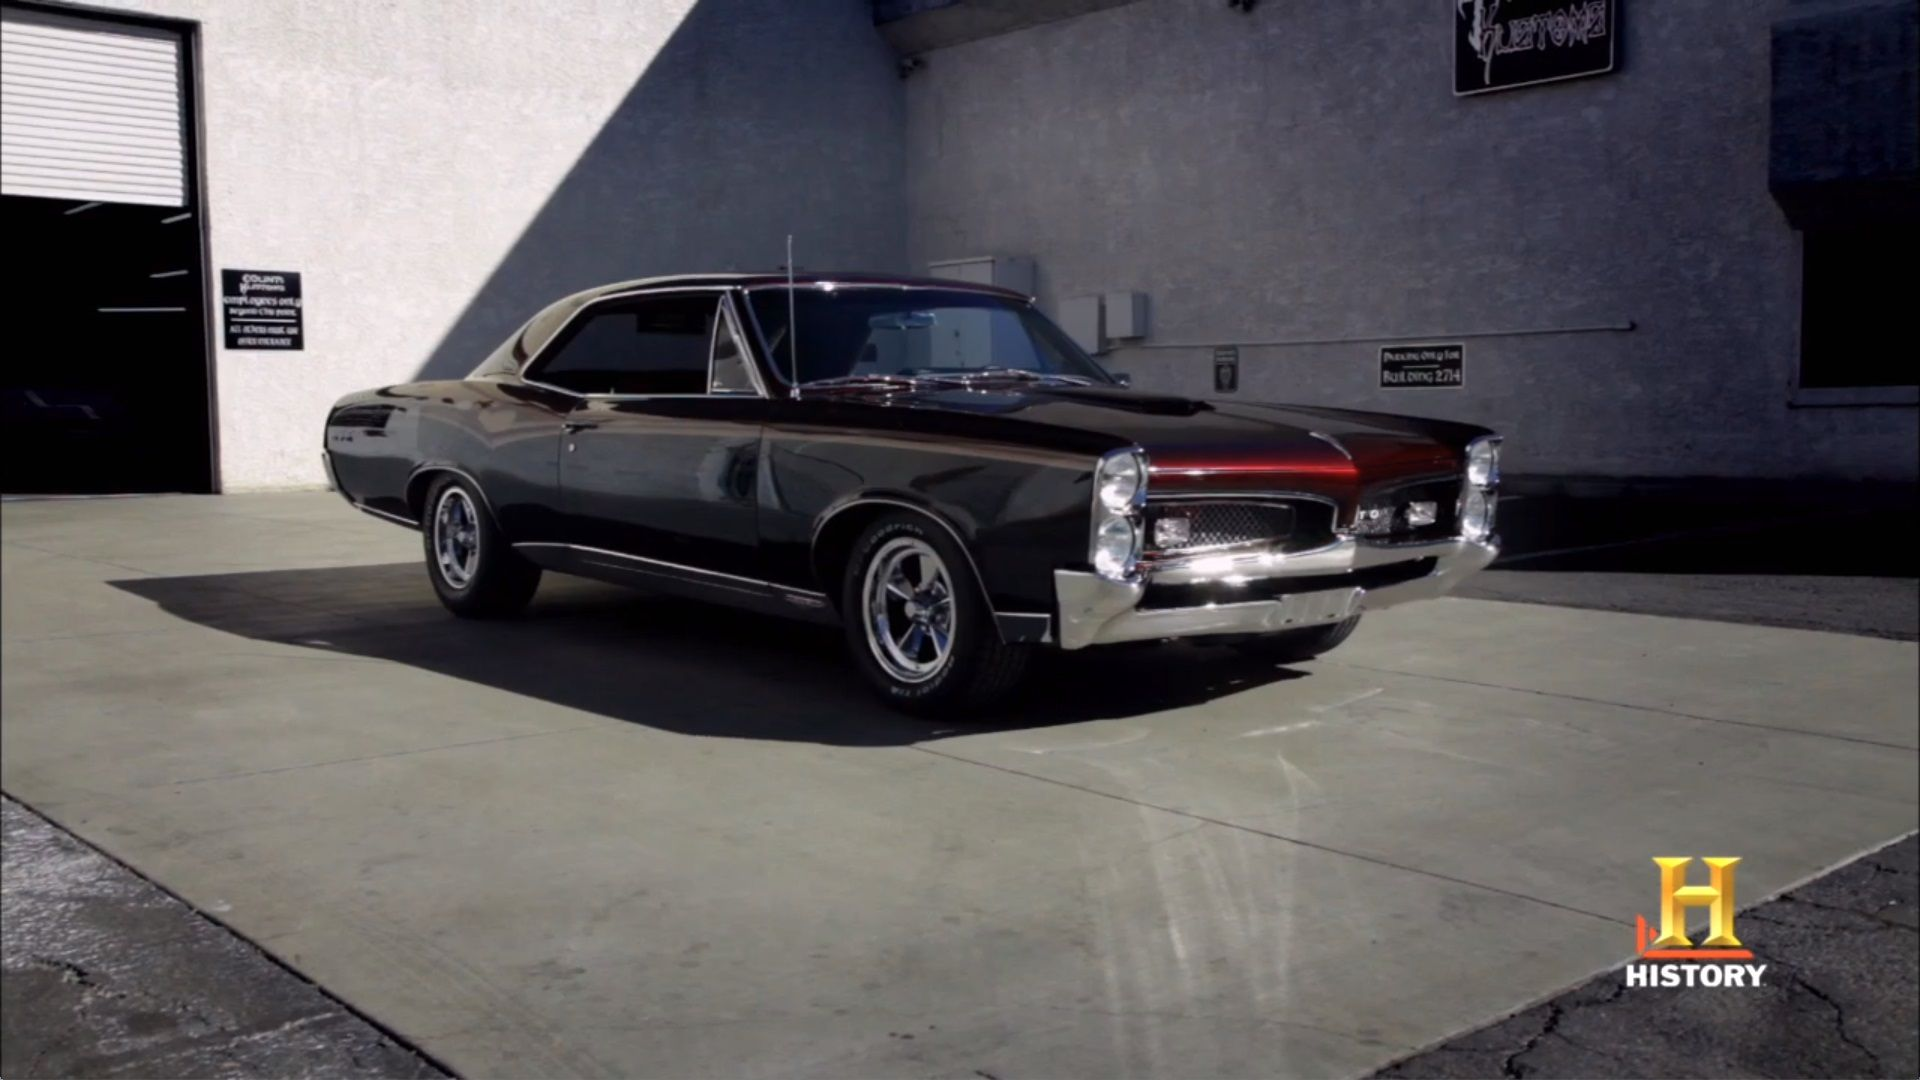 67 Gto Counts Kustoms On Counting Cars Front Qtr View Love